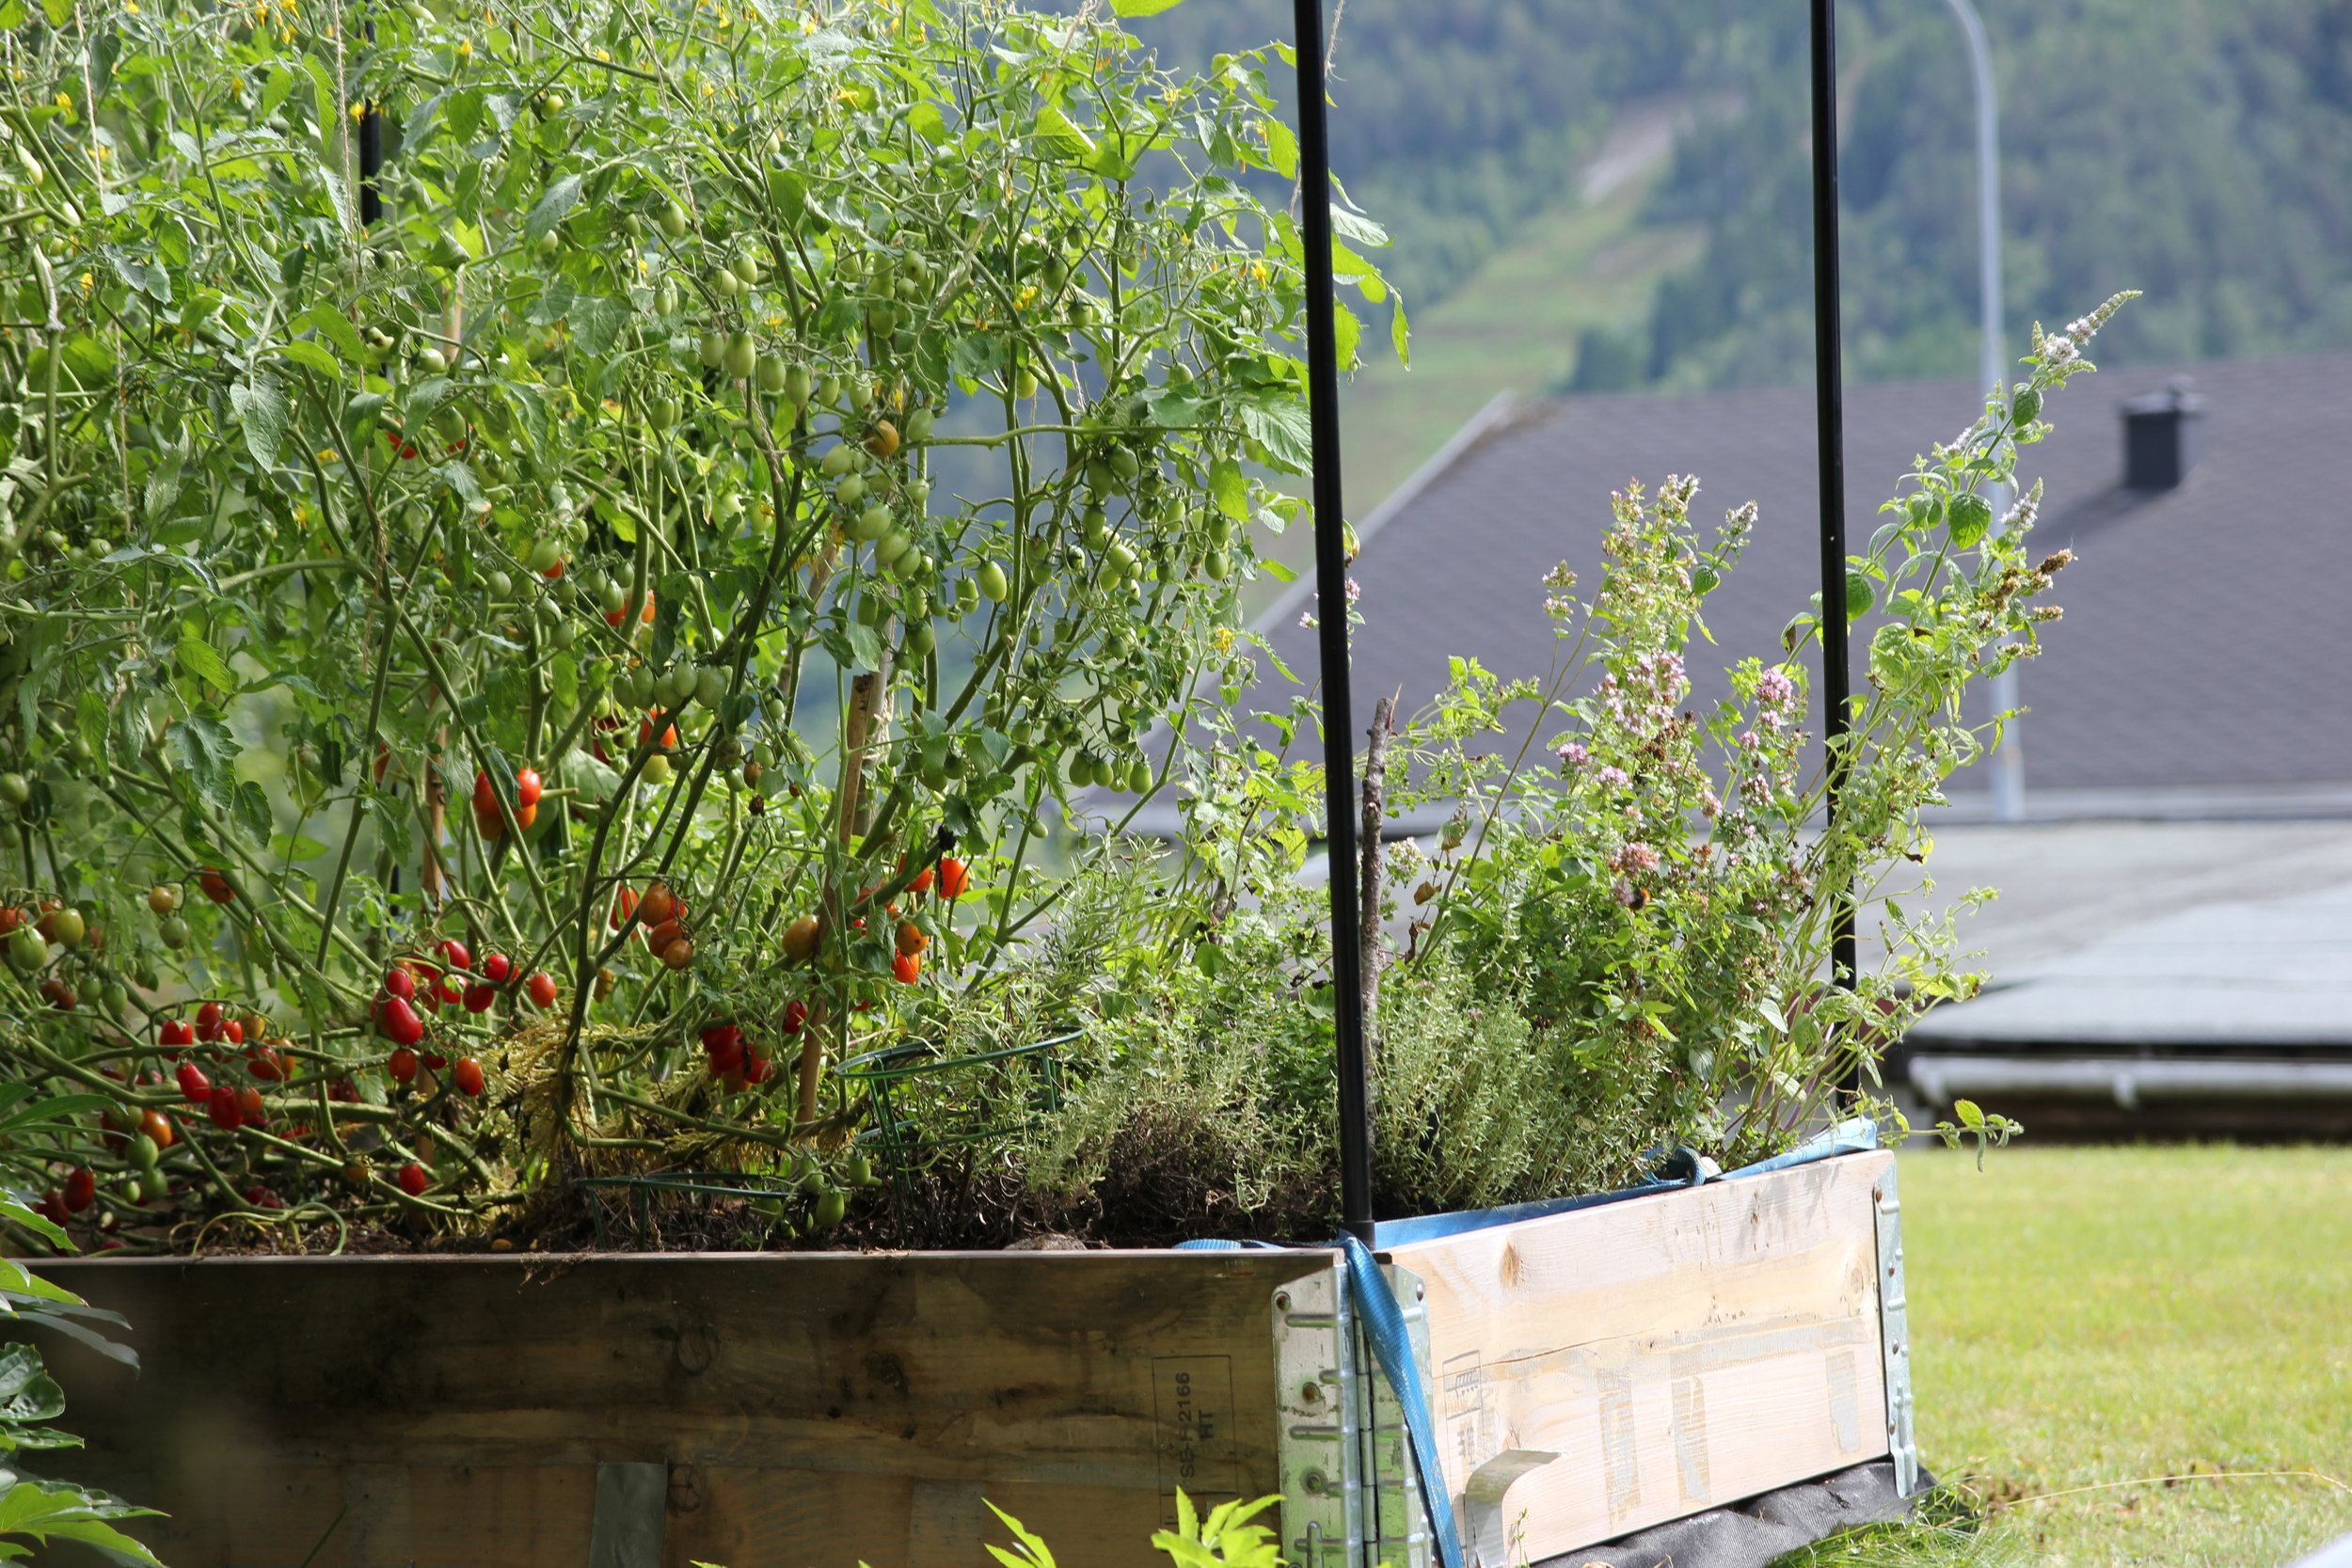 Tomatoes, chillies and herbs in our tiny patch in the garden. More coming along as the Summer sun is still warm!